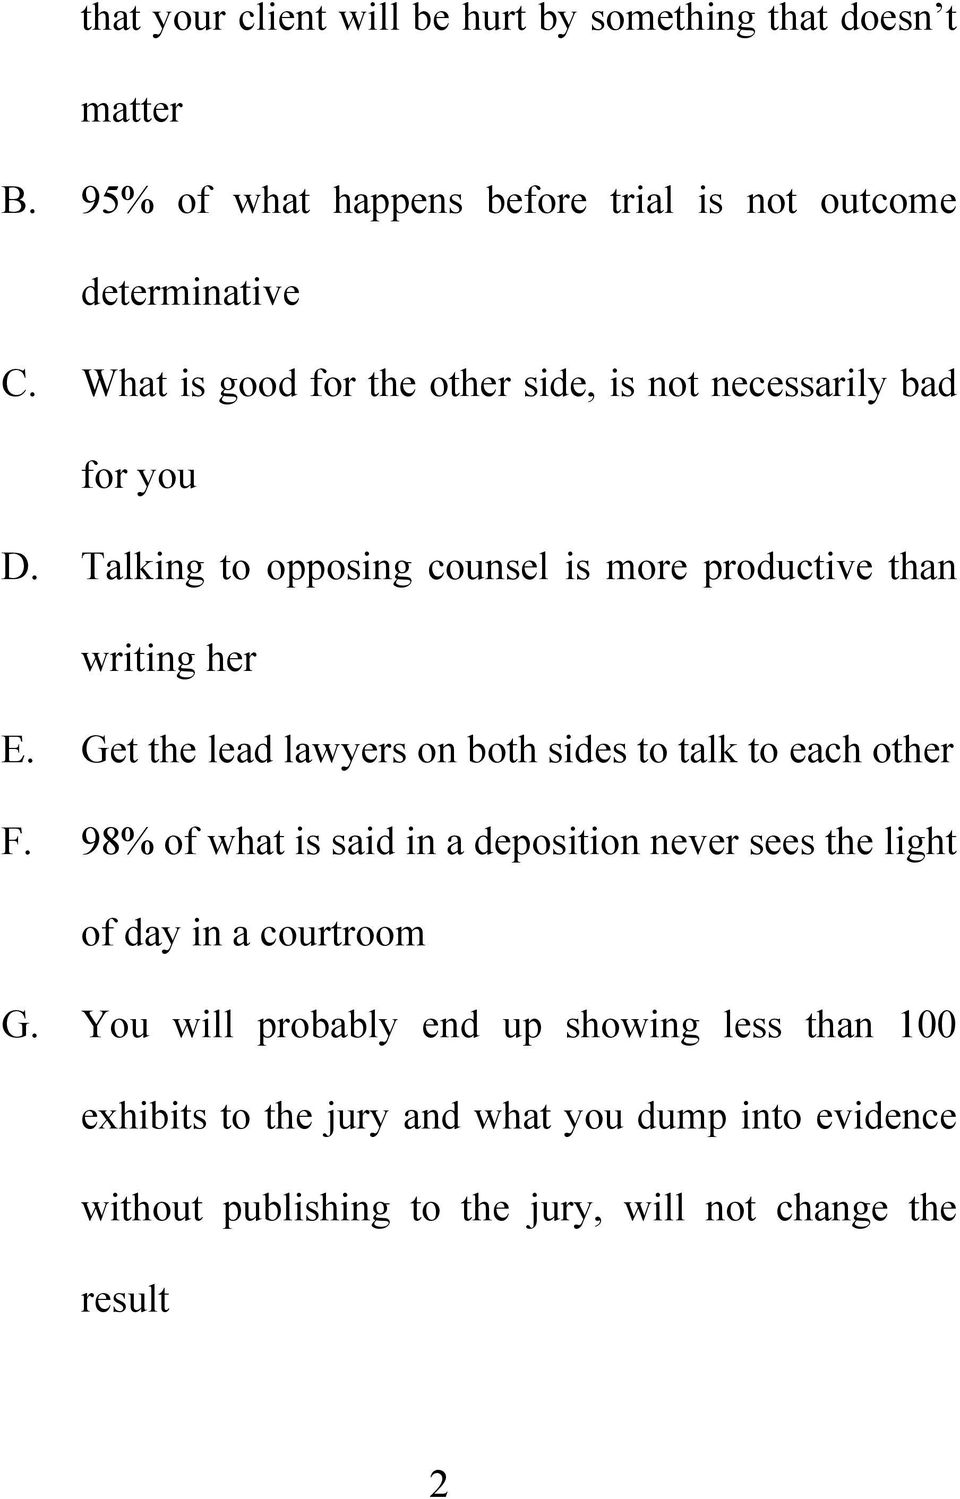 Get the lead lawyers on both sides to talk to each other F. 98% of what is said in a deposition never sees the light of day in a courtroom G.